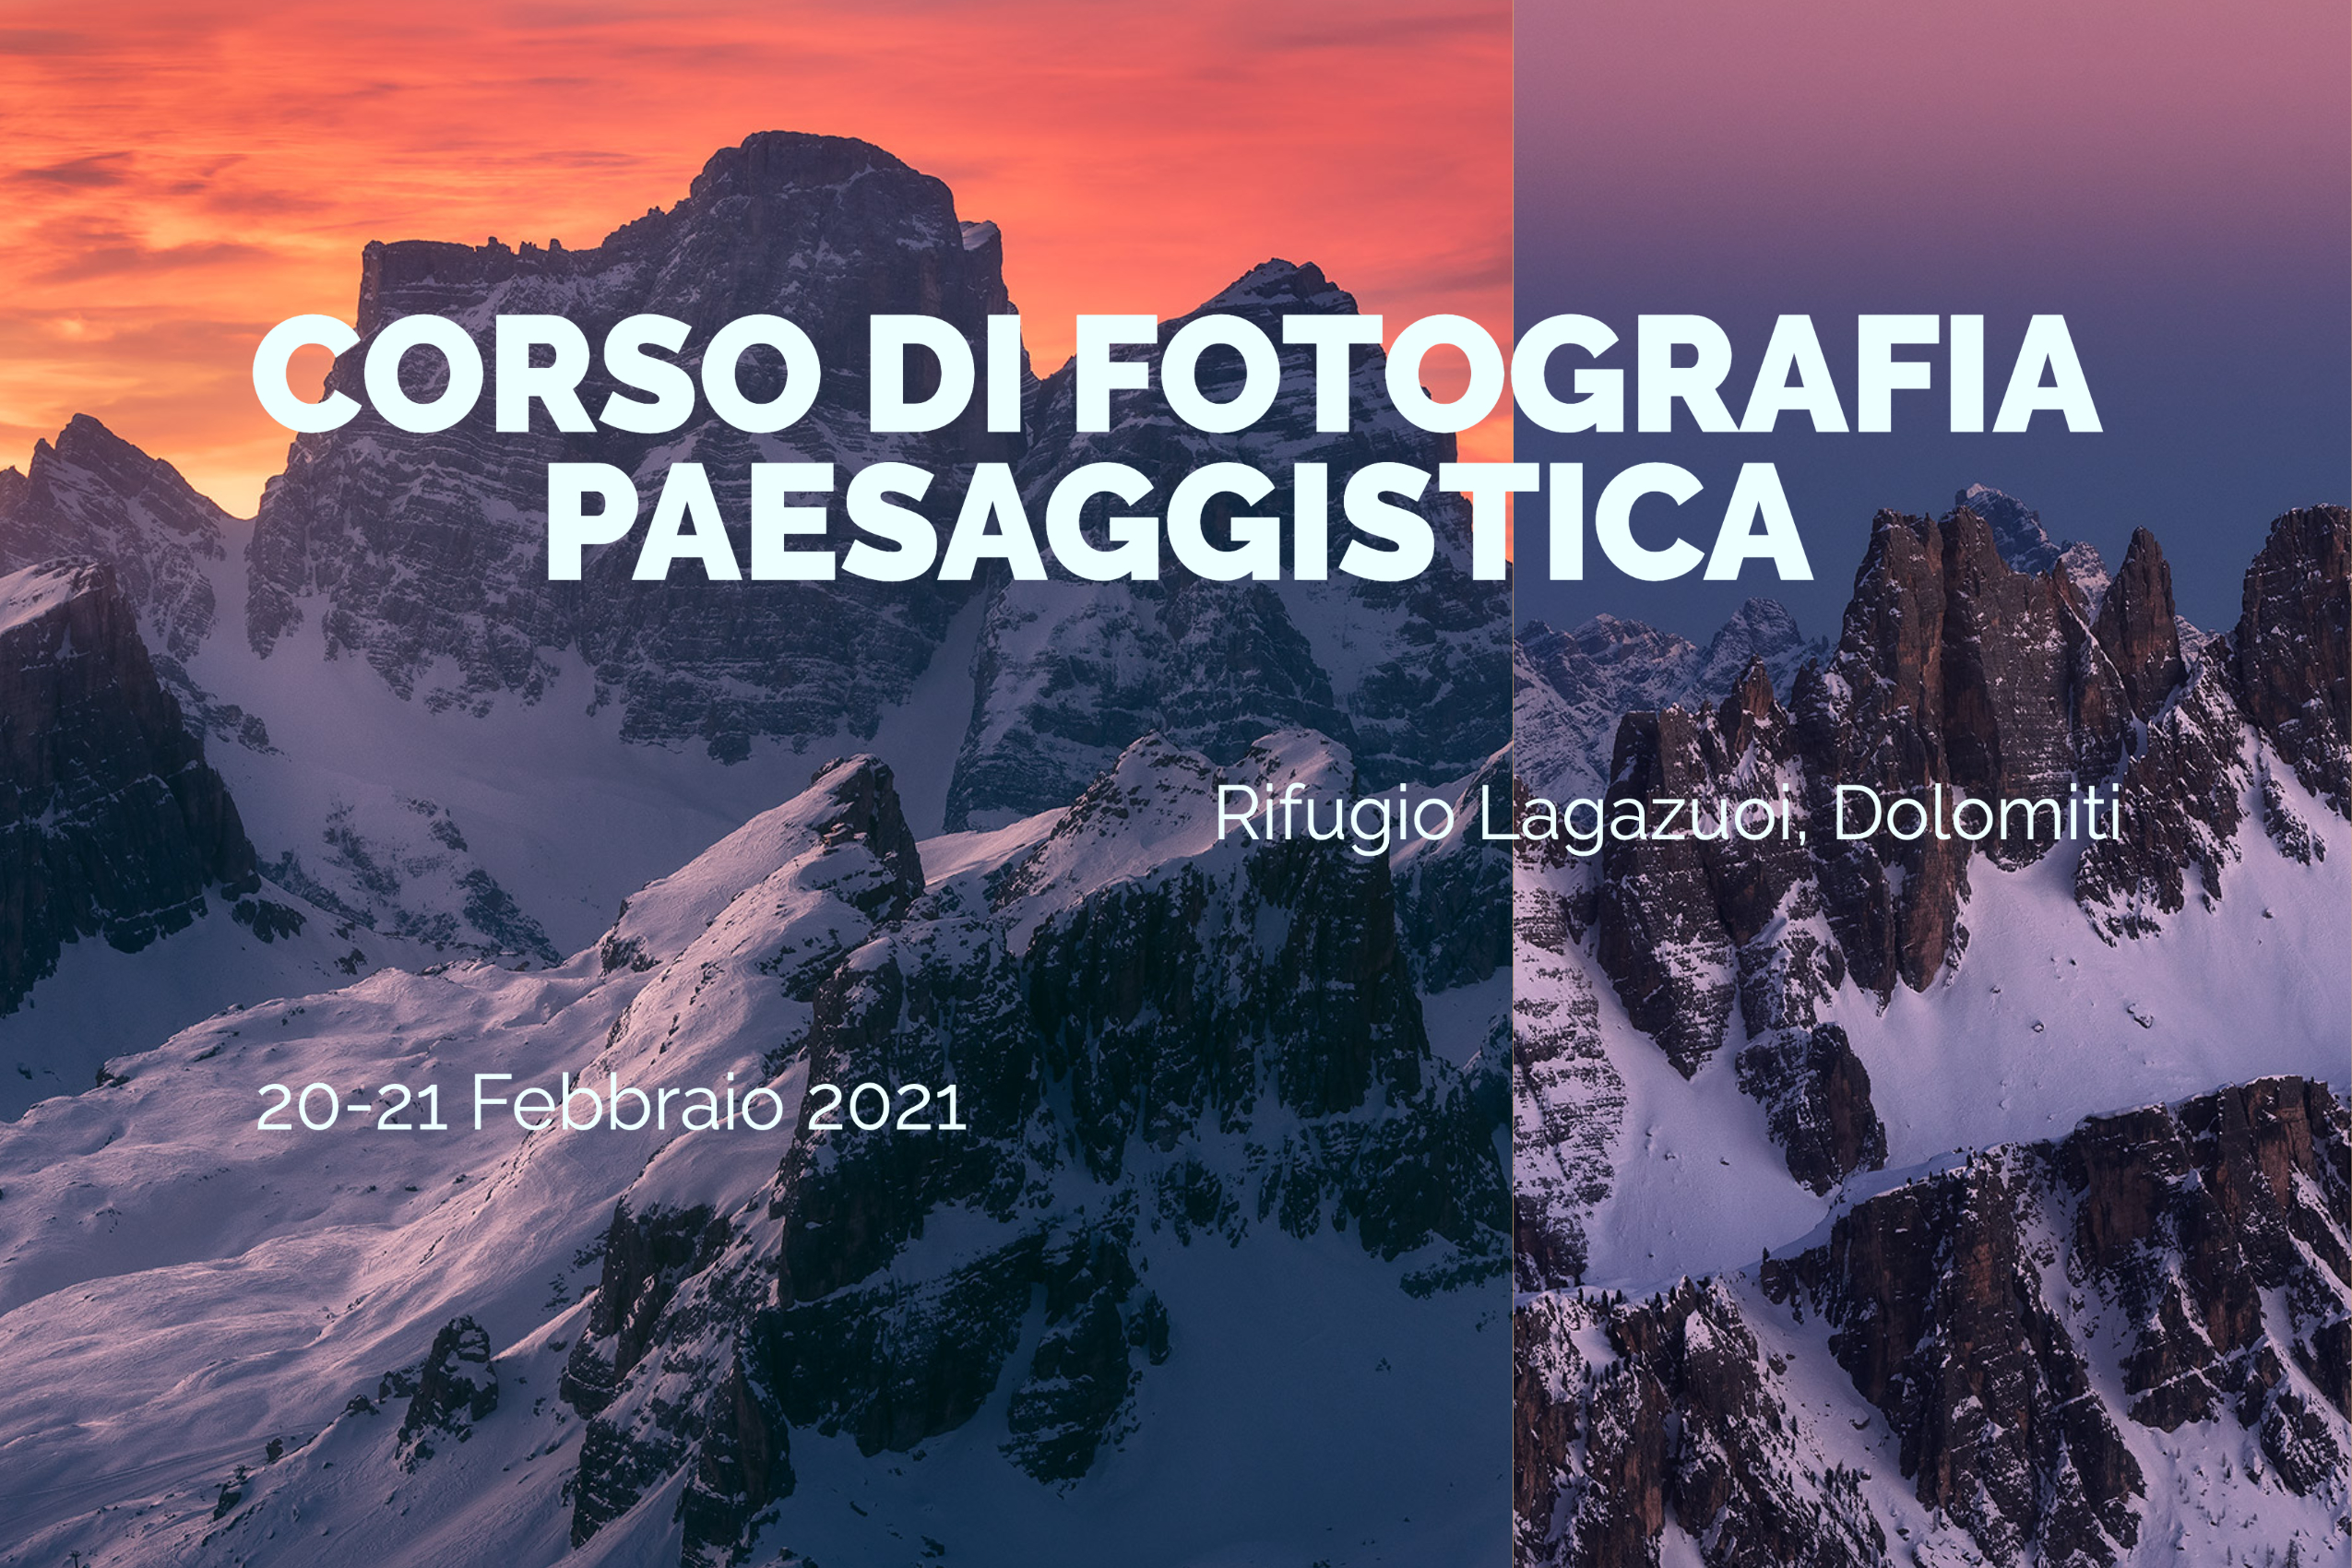 workshop fotografico nelle dolomiti in inverno